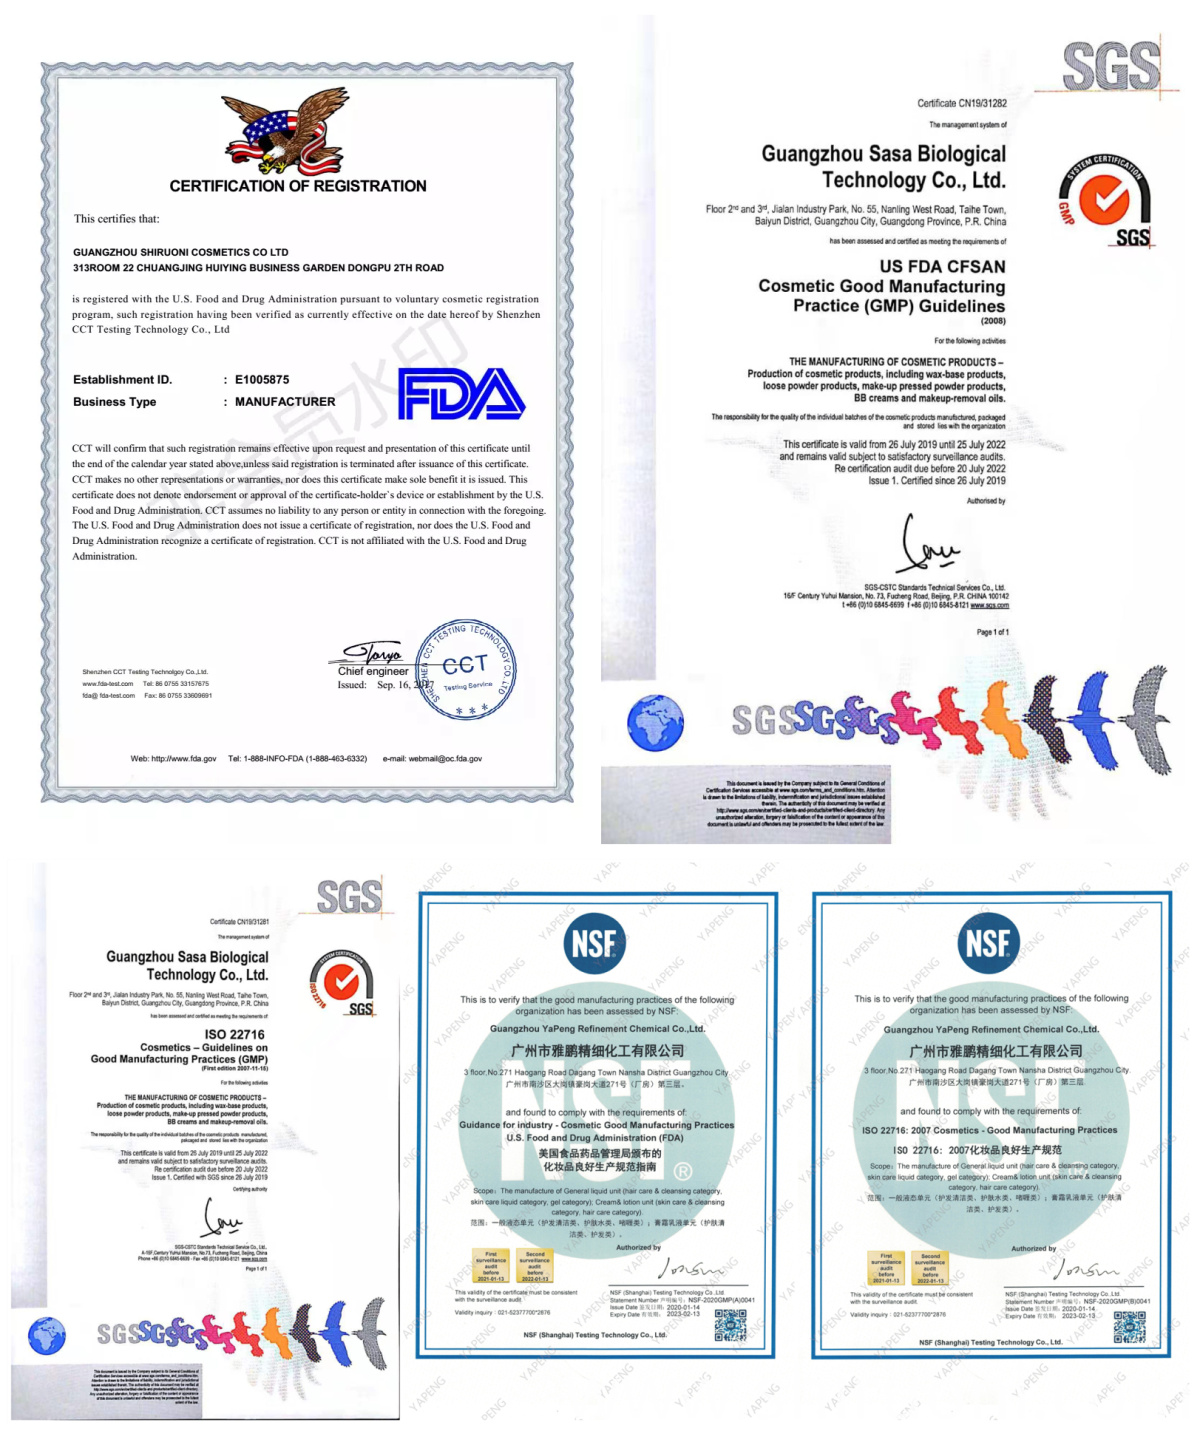 Shiruoni certifications